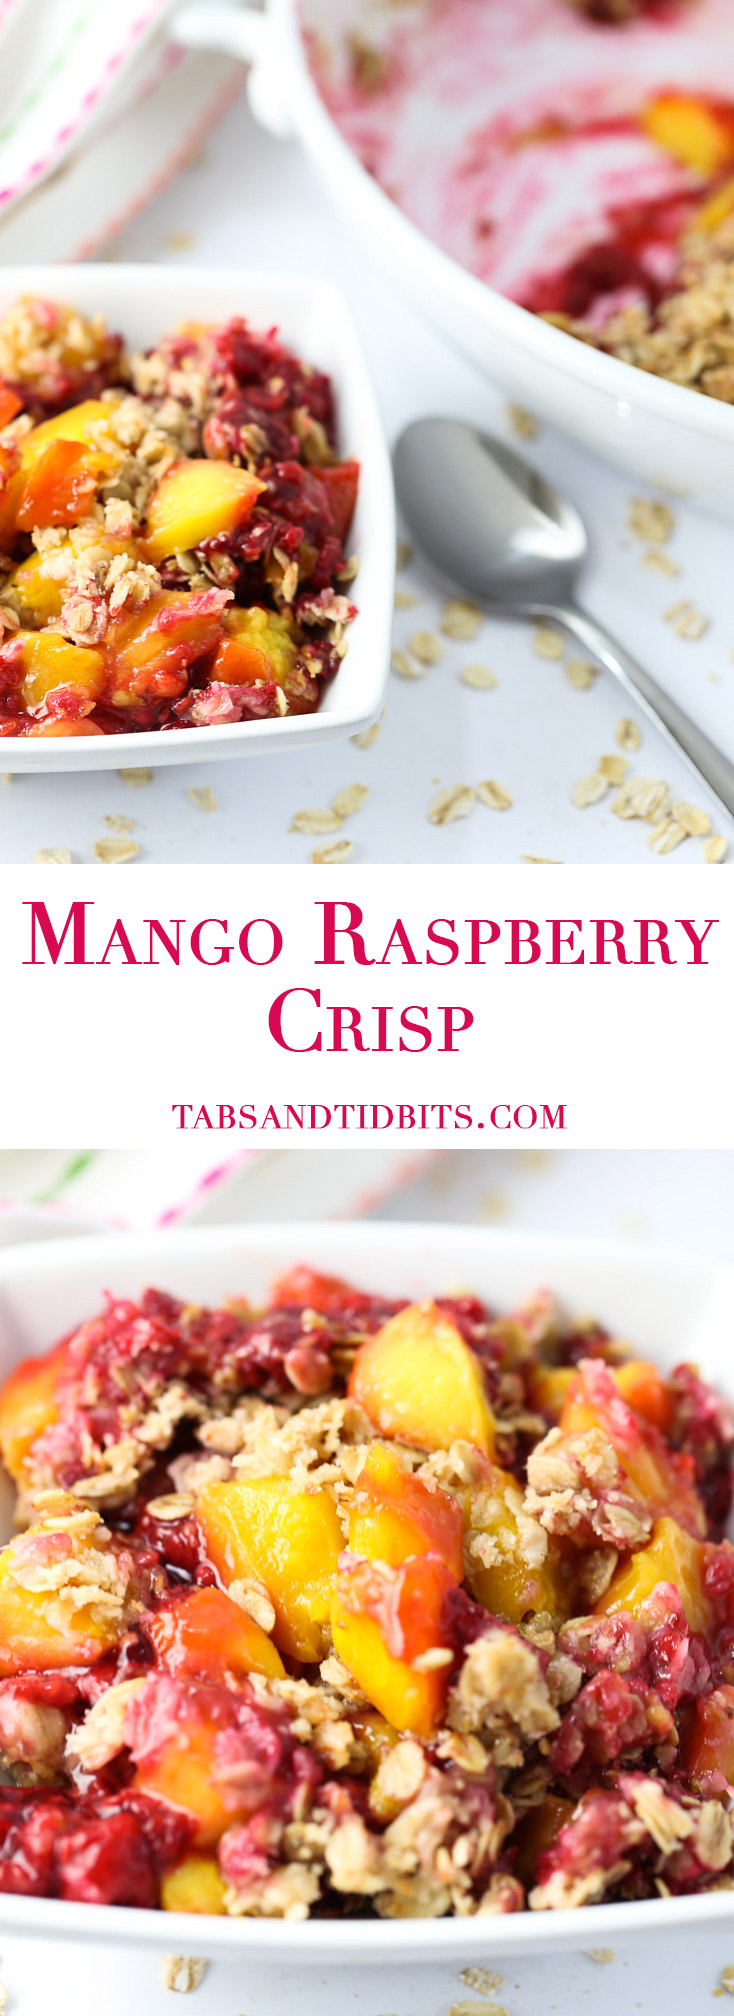 Mango Raspberry Crisp - A delicious combination of sweet and tart fruit with a crisp oat and coconut topping!